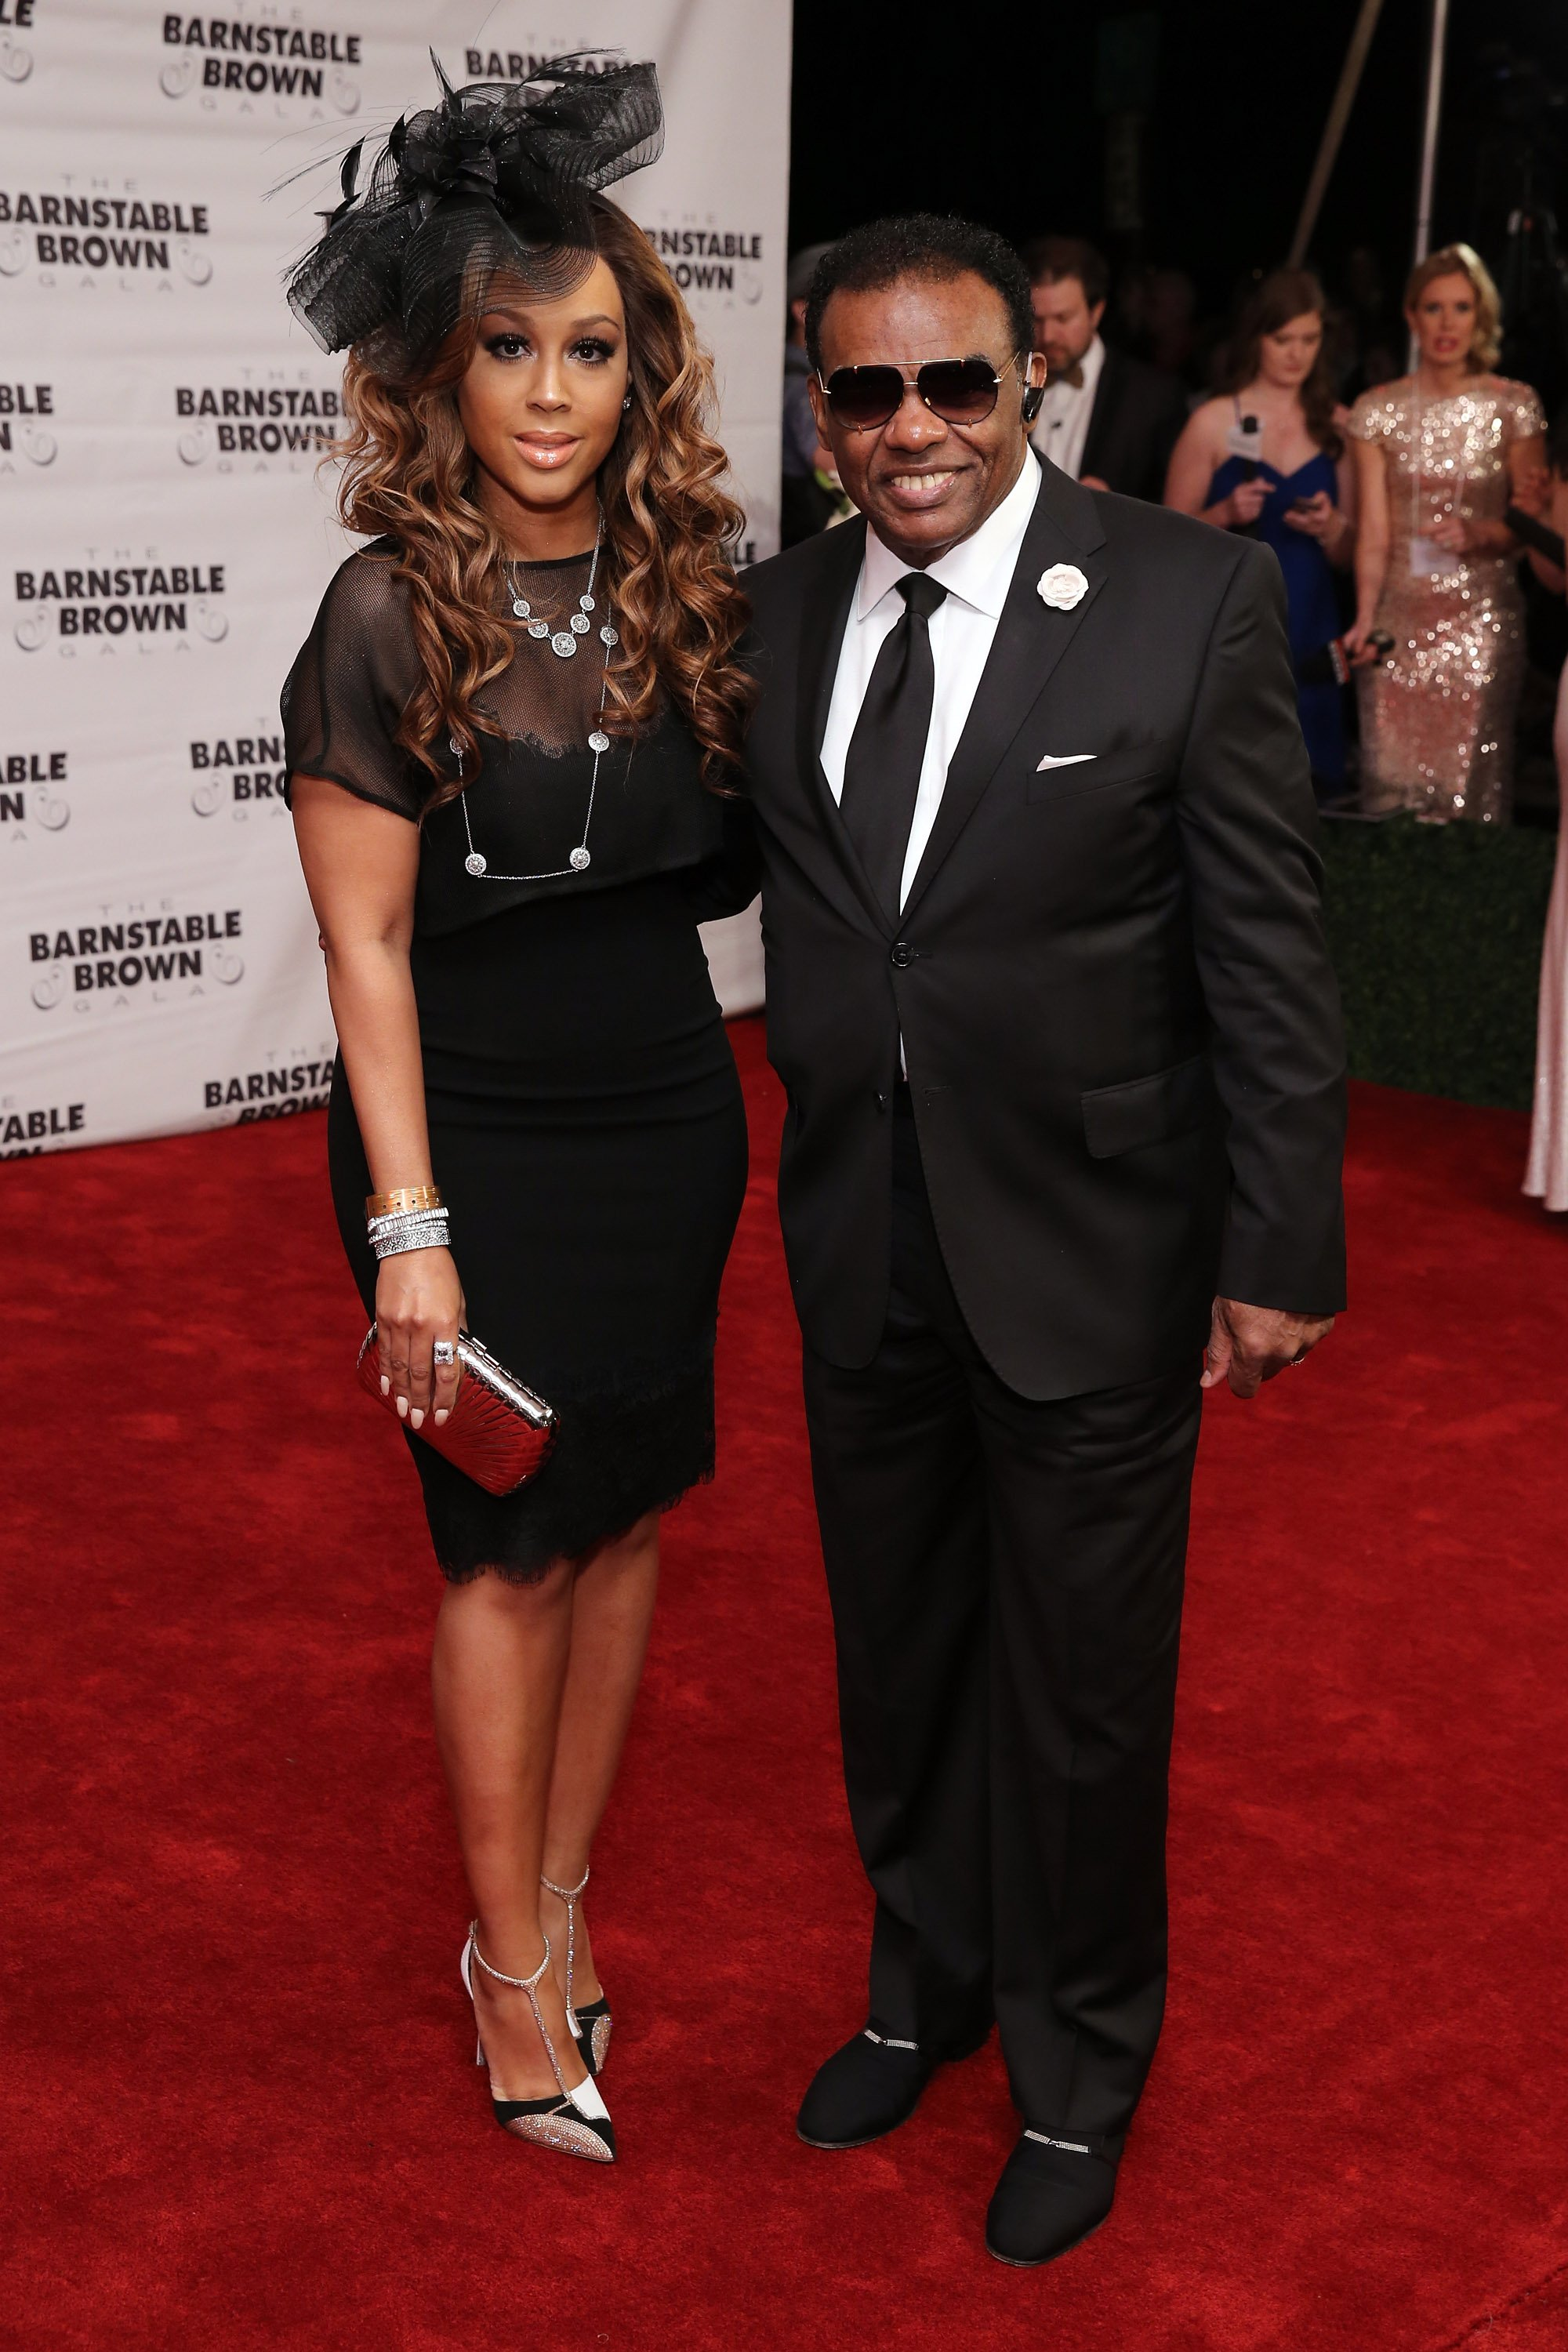 Ron Isley and Kandy Johnson on May 1, 2015 in Louisville, Kentucky | Source: Getty Images/Global Images Ukraine